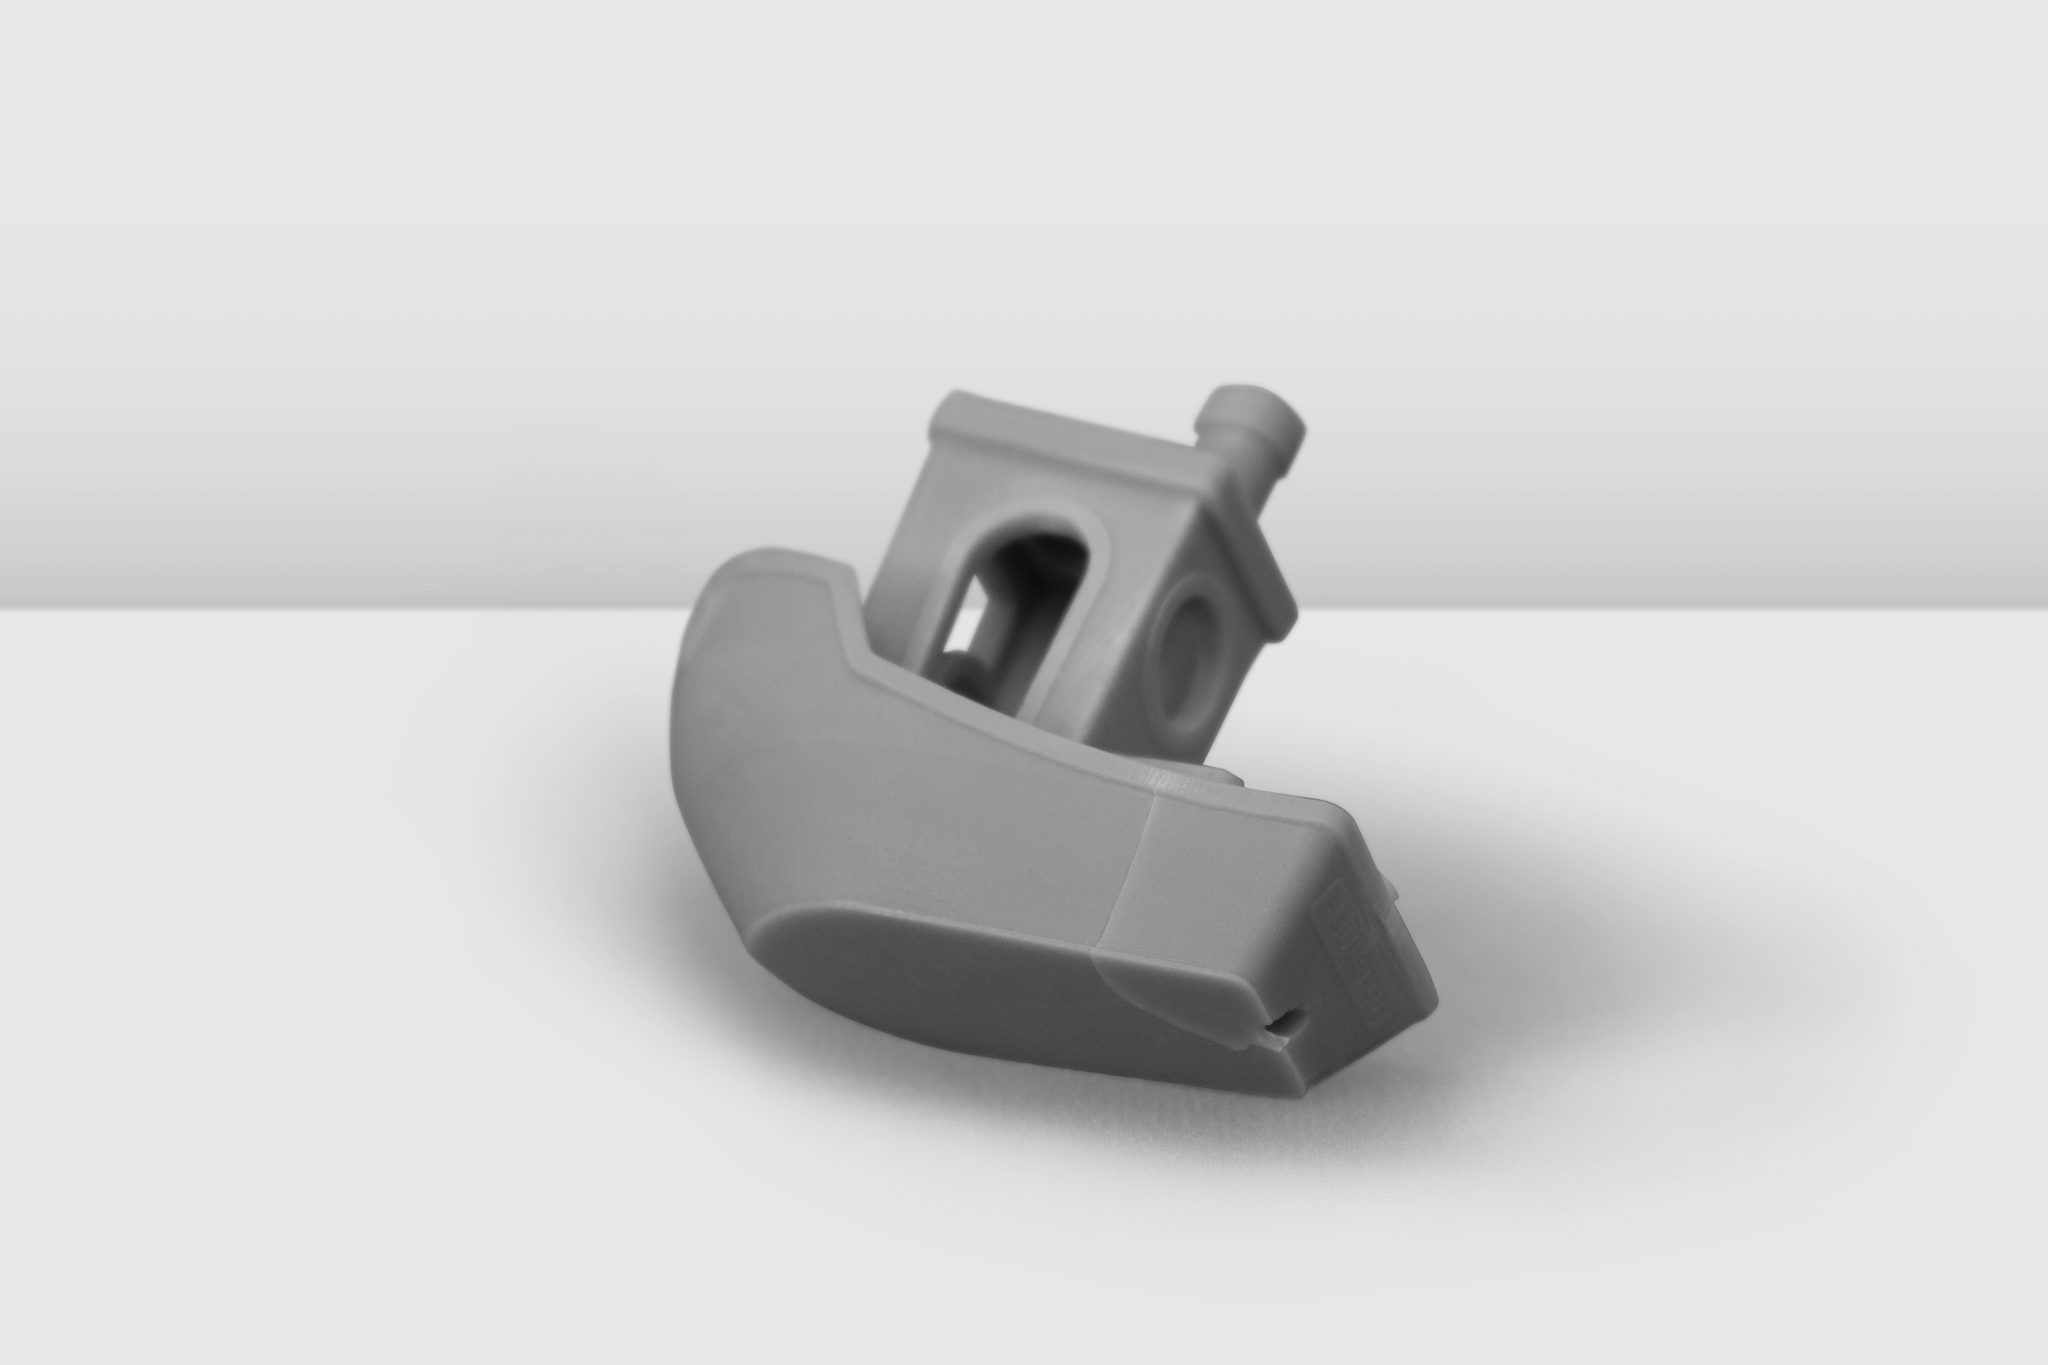 The stern of the benchy.